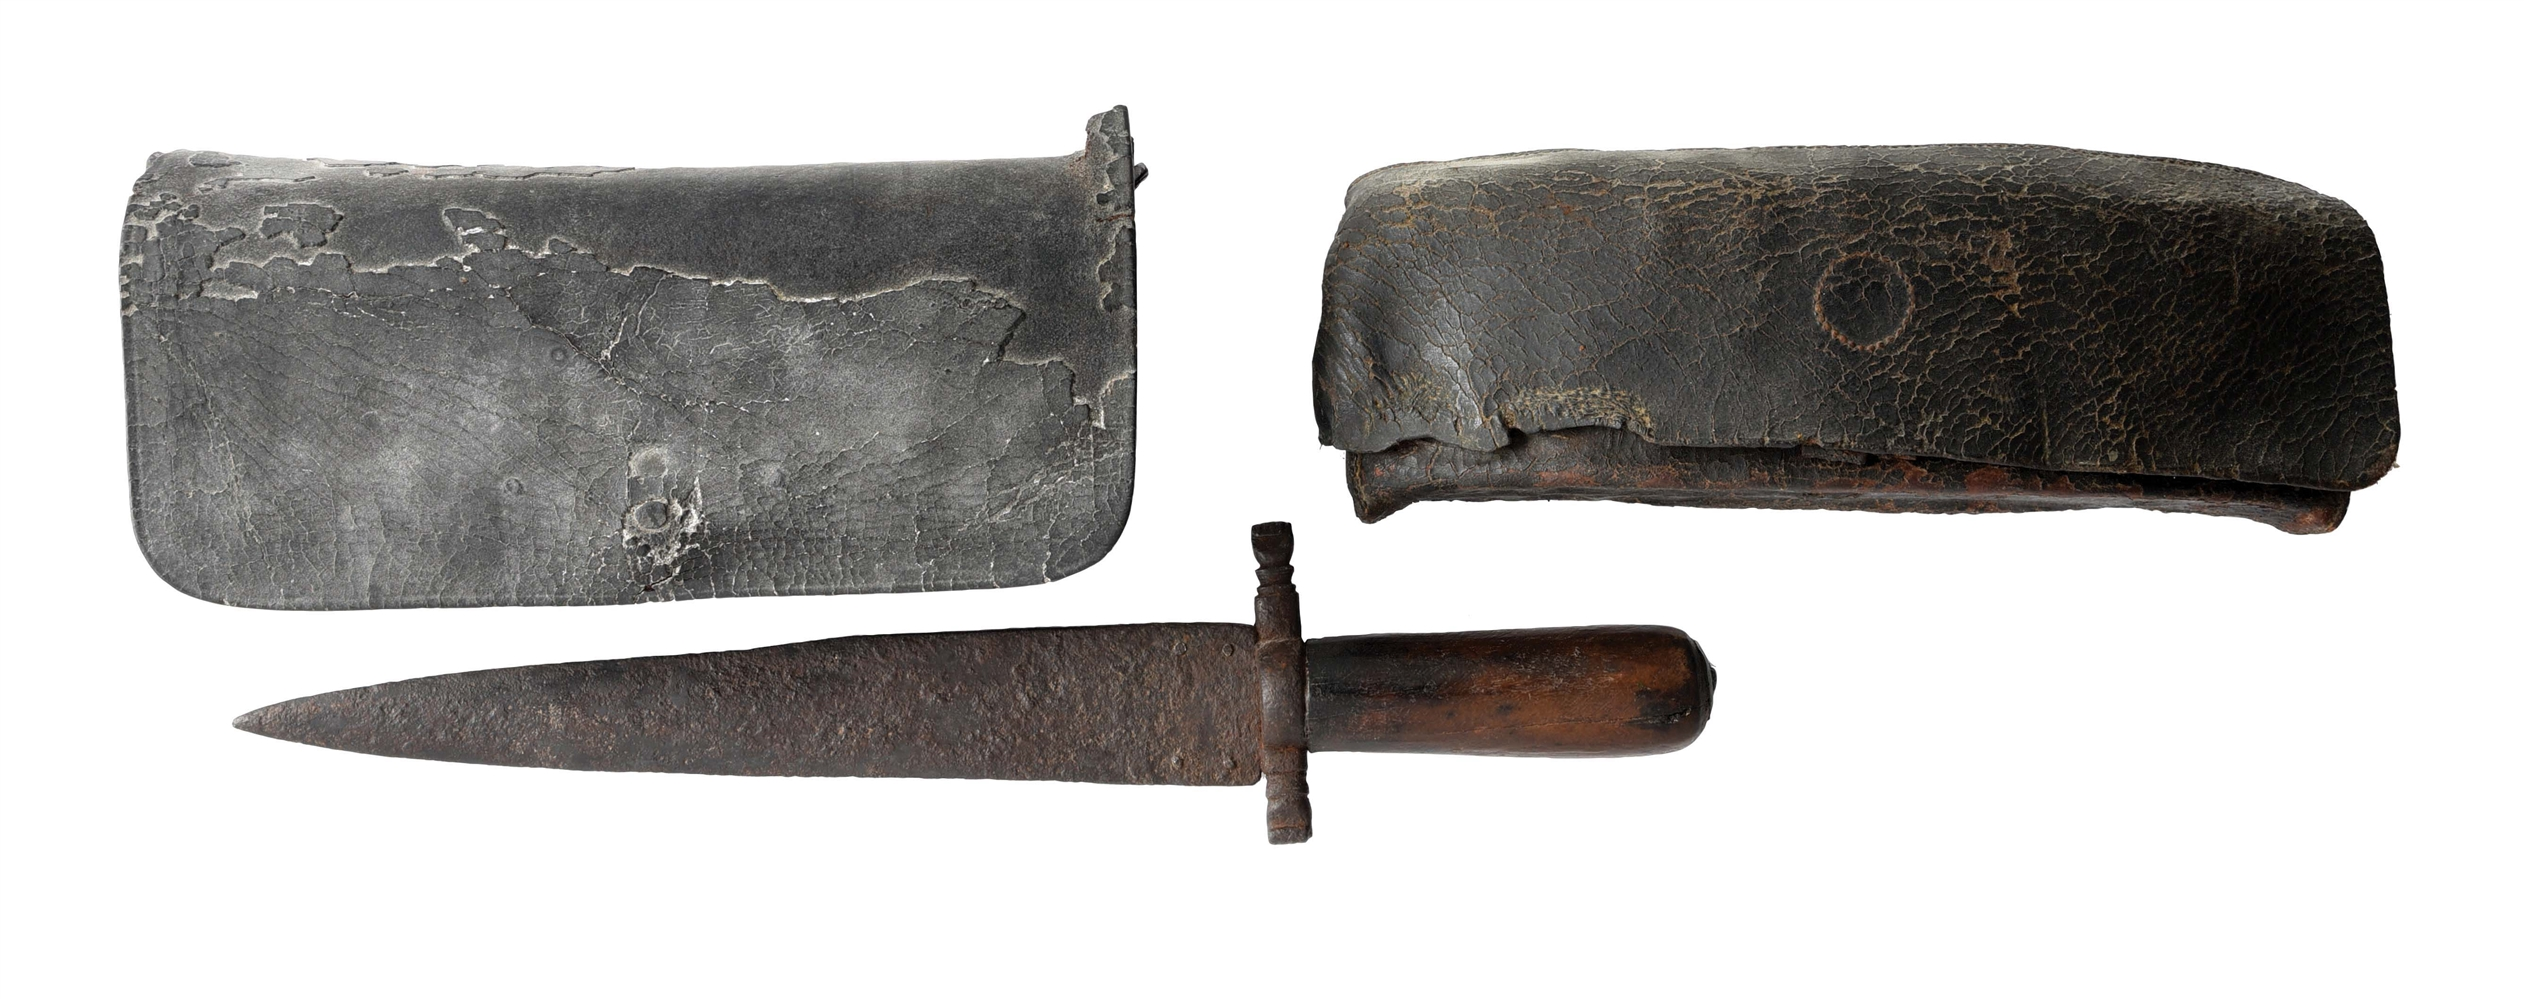 LOT OF 3: AMERICAN 1775-1783 24 HOLE CARTRIDGE BOX AND 1780-1820 24 HOLE CARTRIDGE BOX AND EARLY AMERICAN KNIFE.